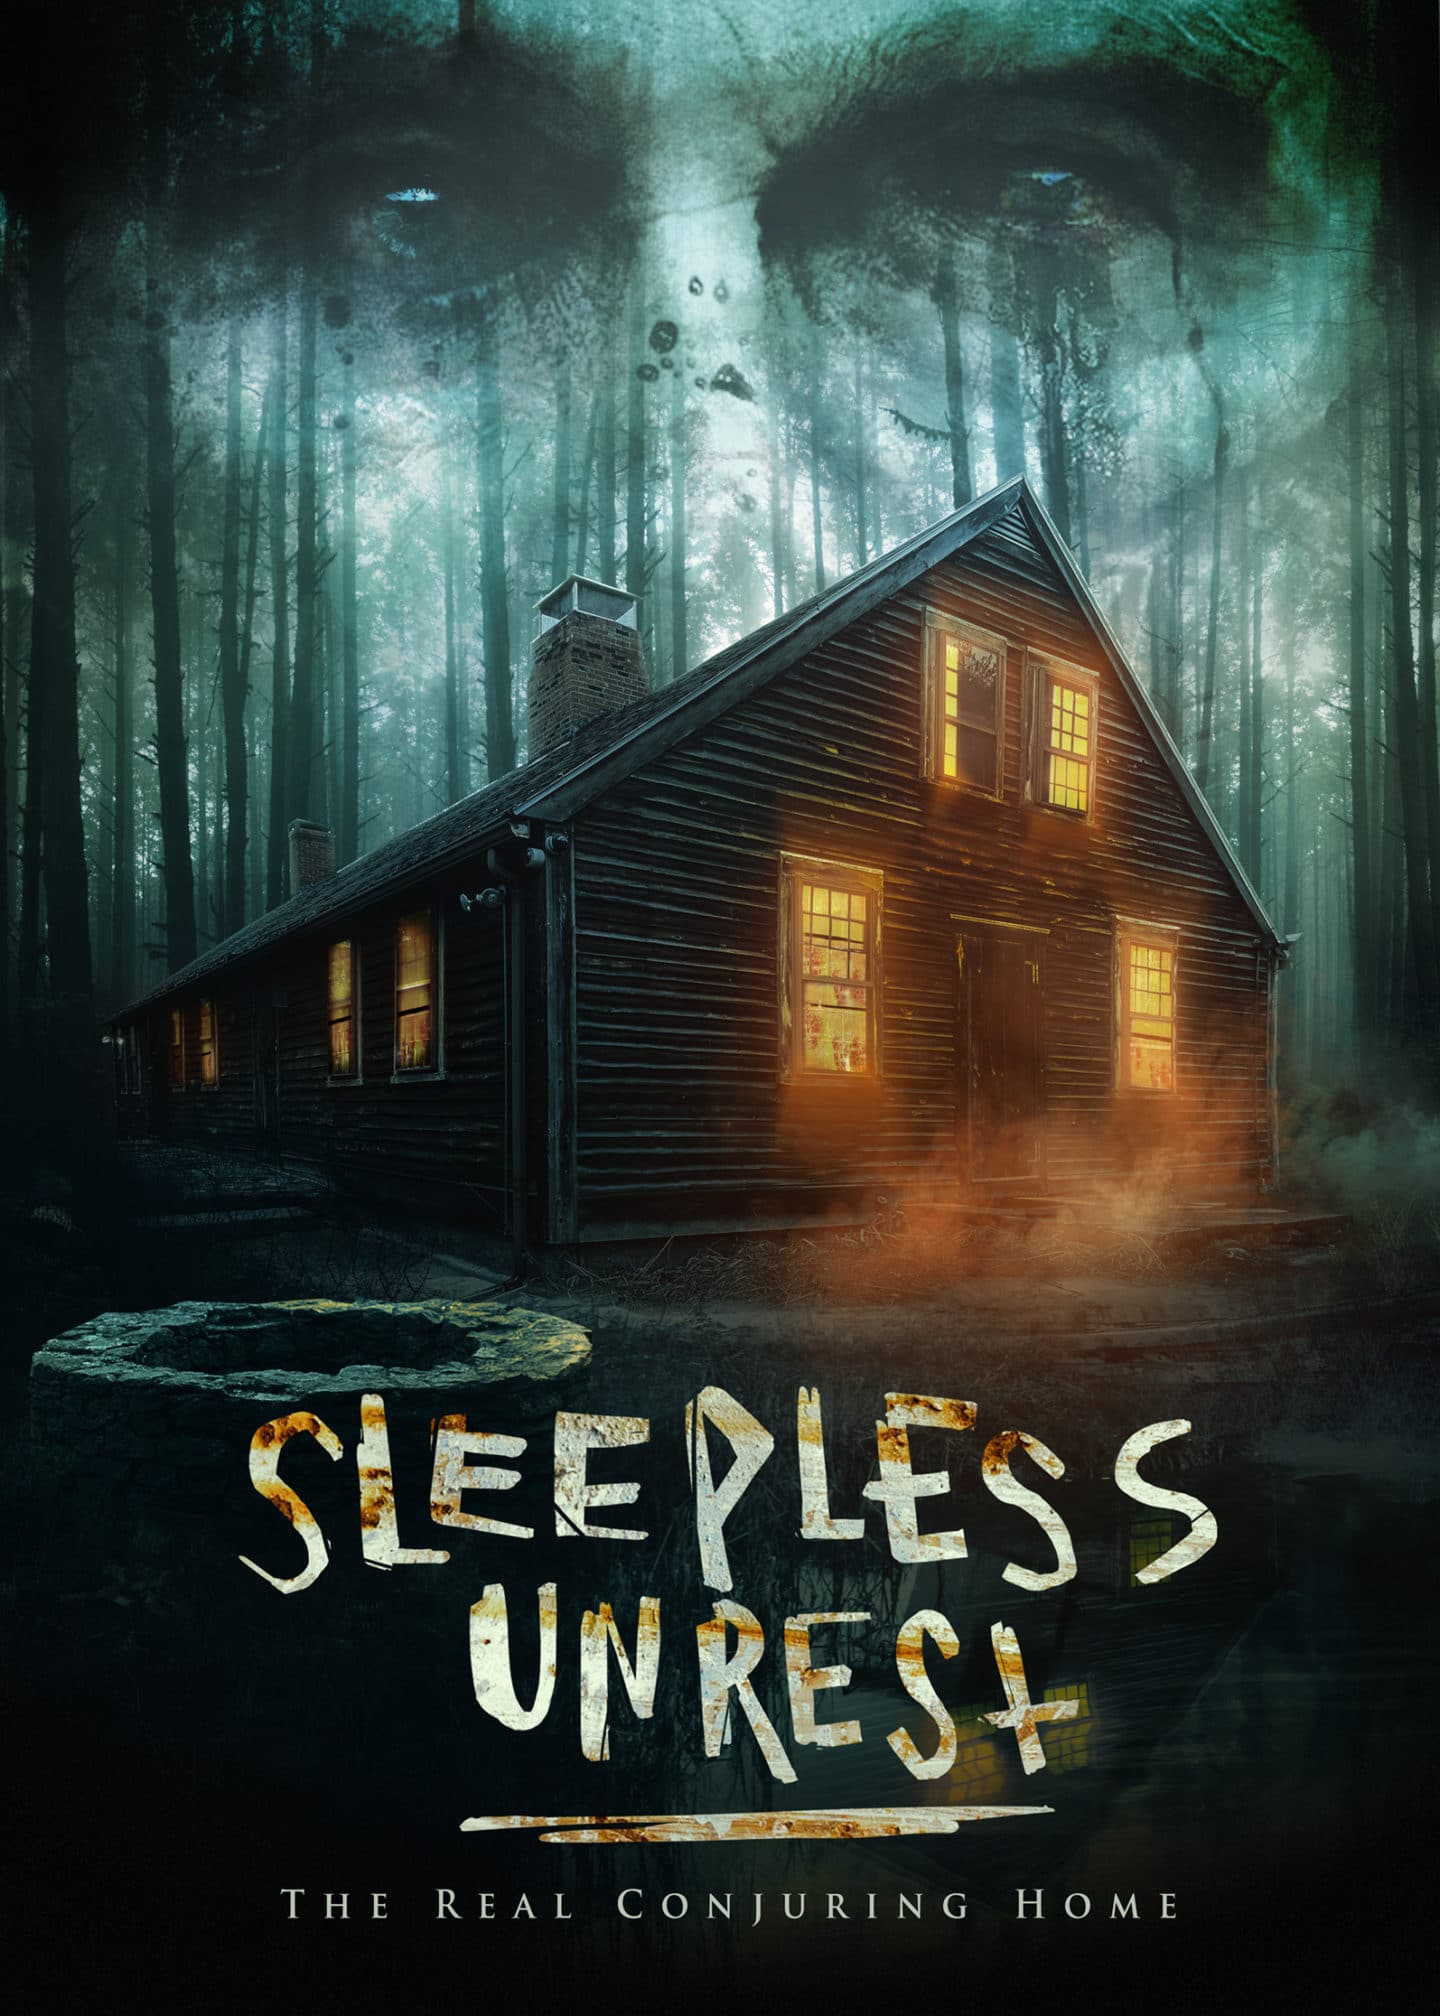 The Sleepless Unrest The Real Conjuring Home – Teaser Poster